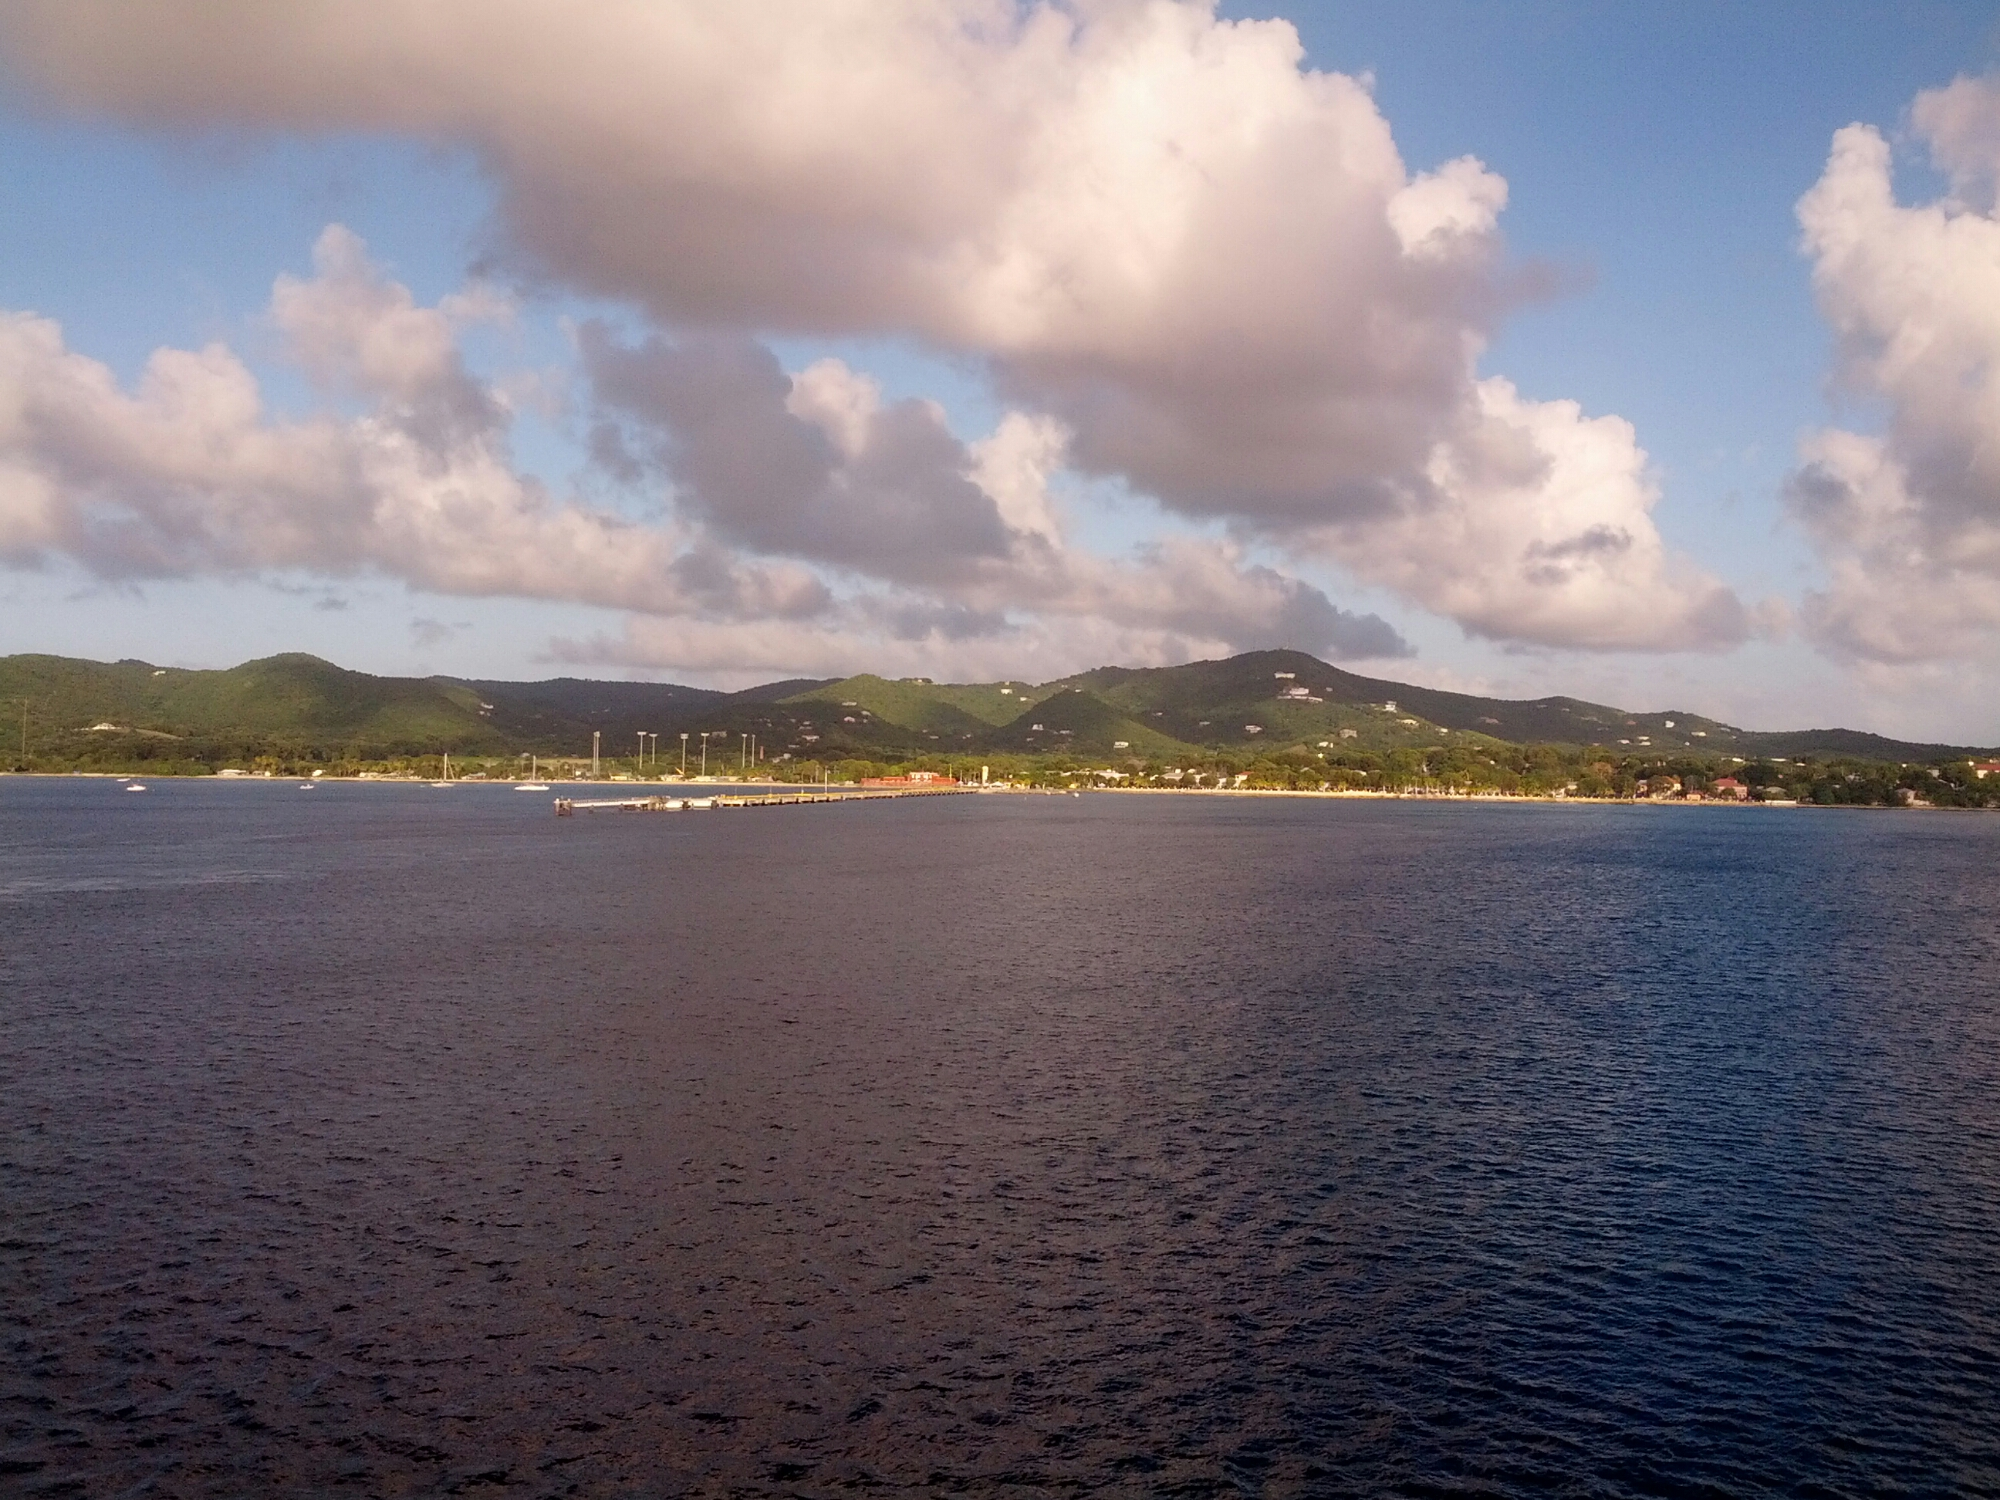 Greetings from St. Croix